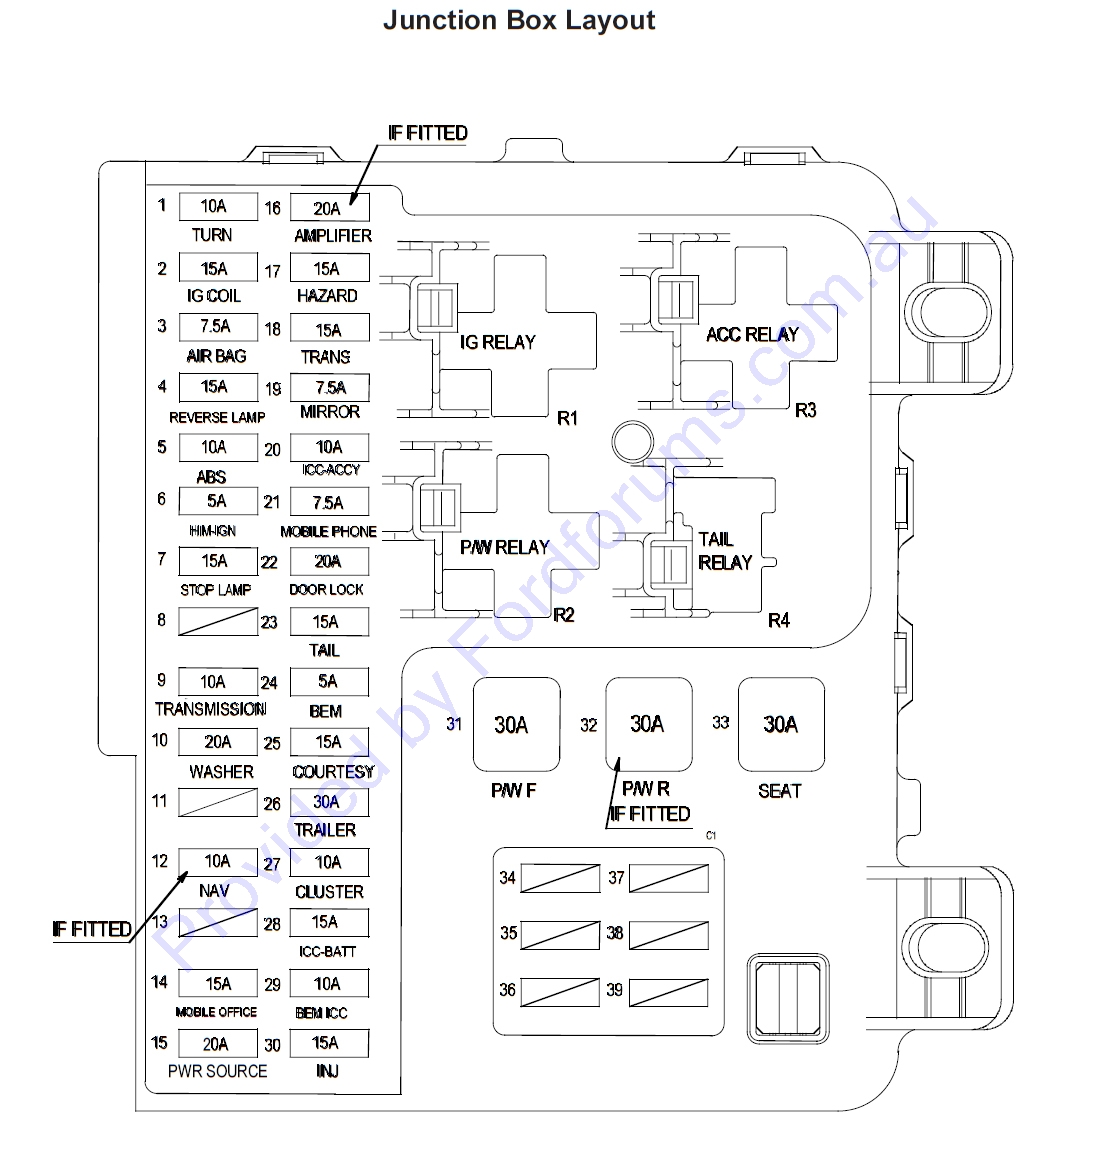 hight resolution of 1964 ford falcon fuse box diagram wiring diagram details 1964 ford falcon fuse box diagram